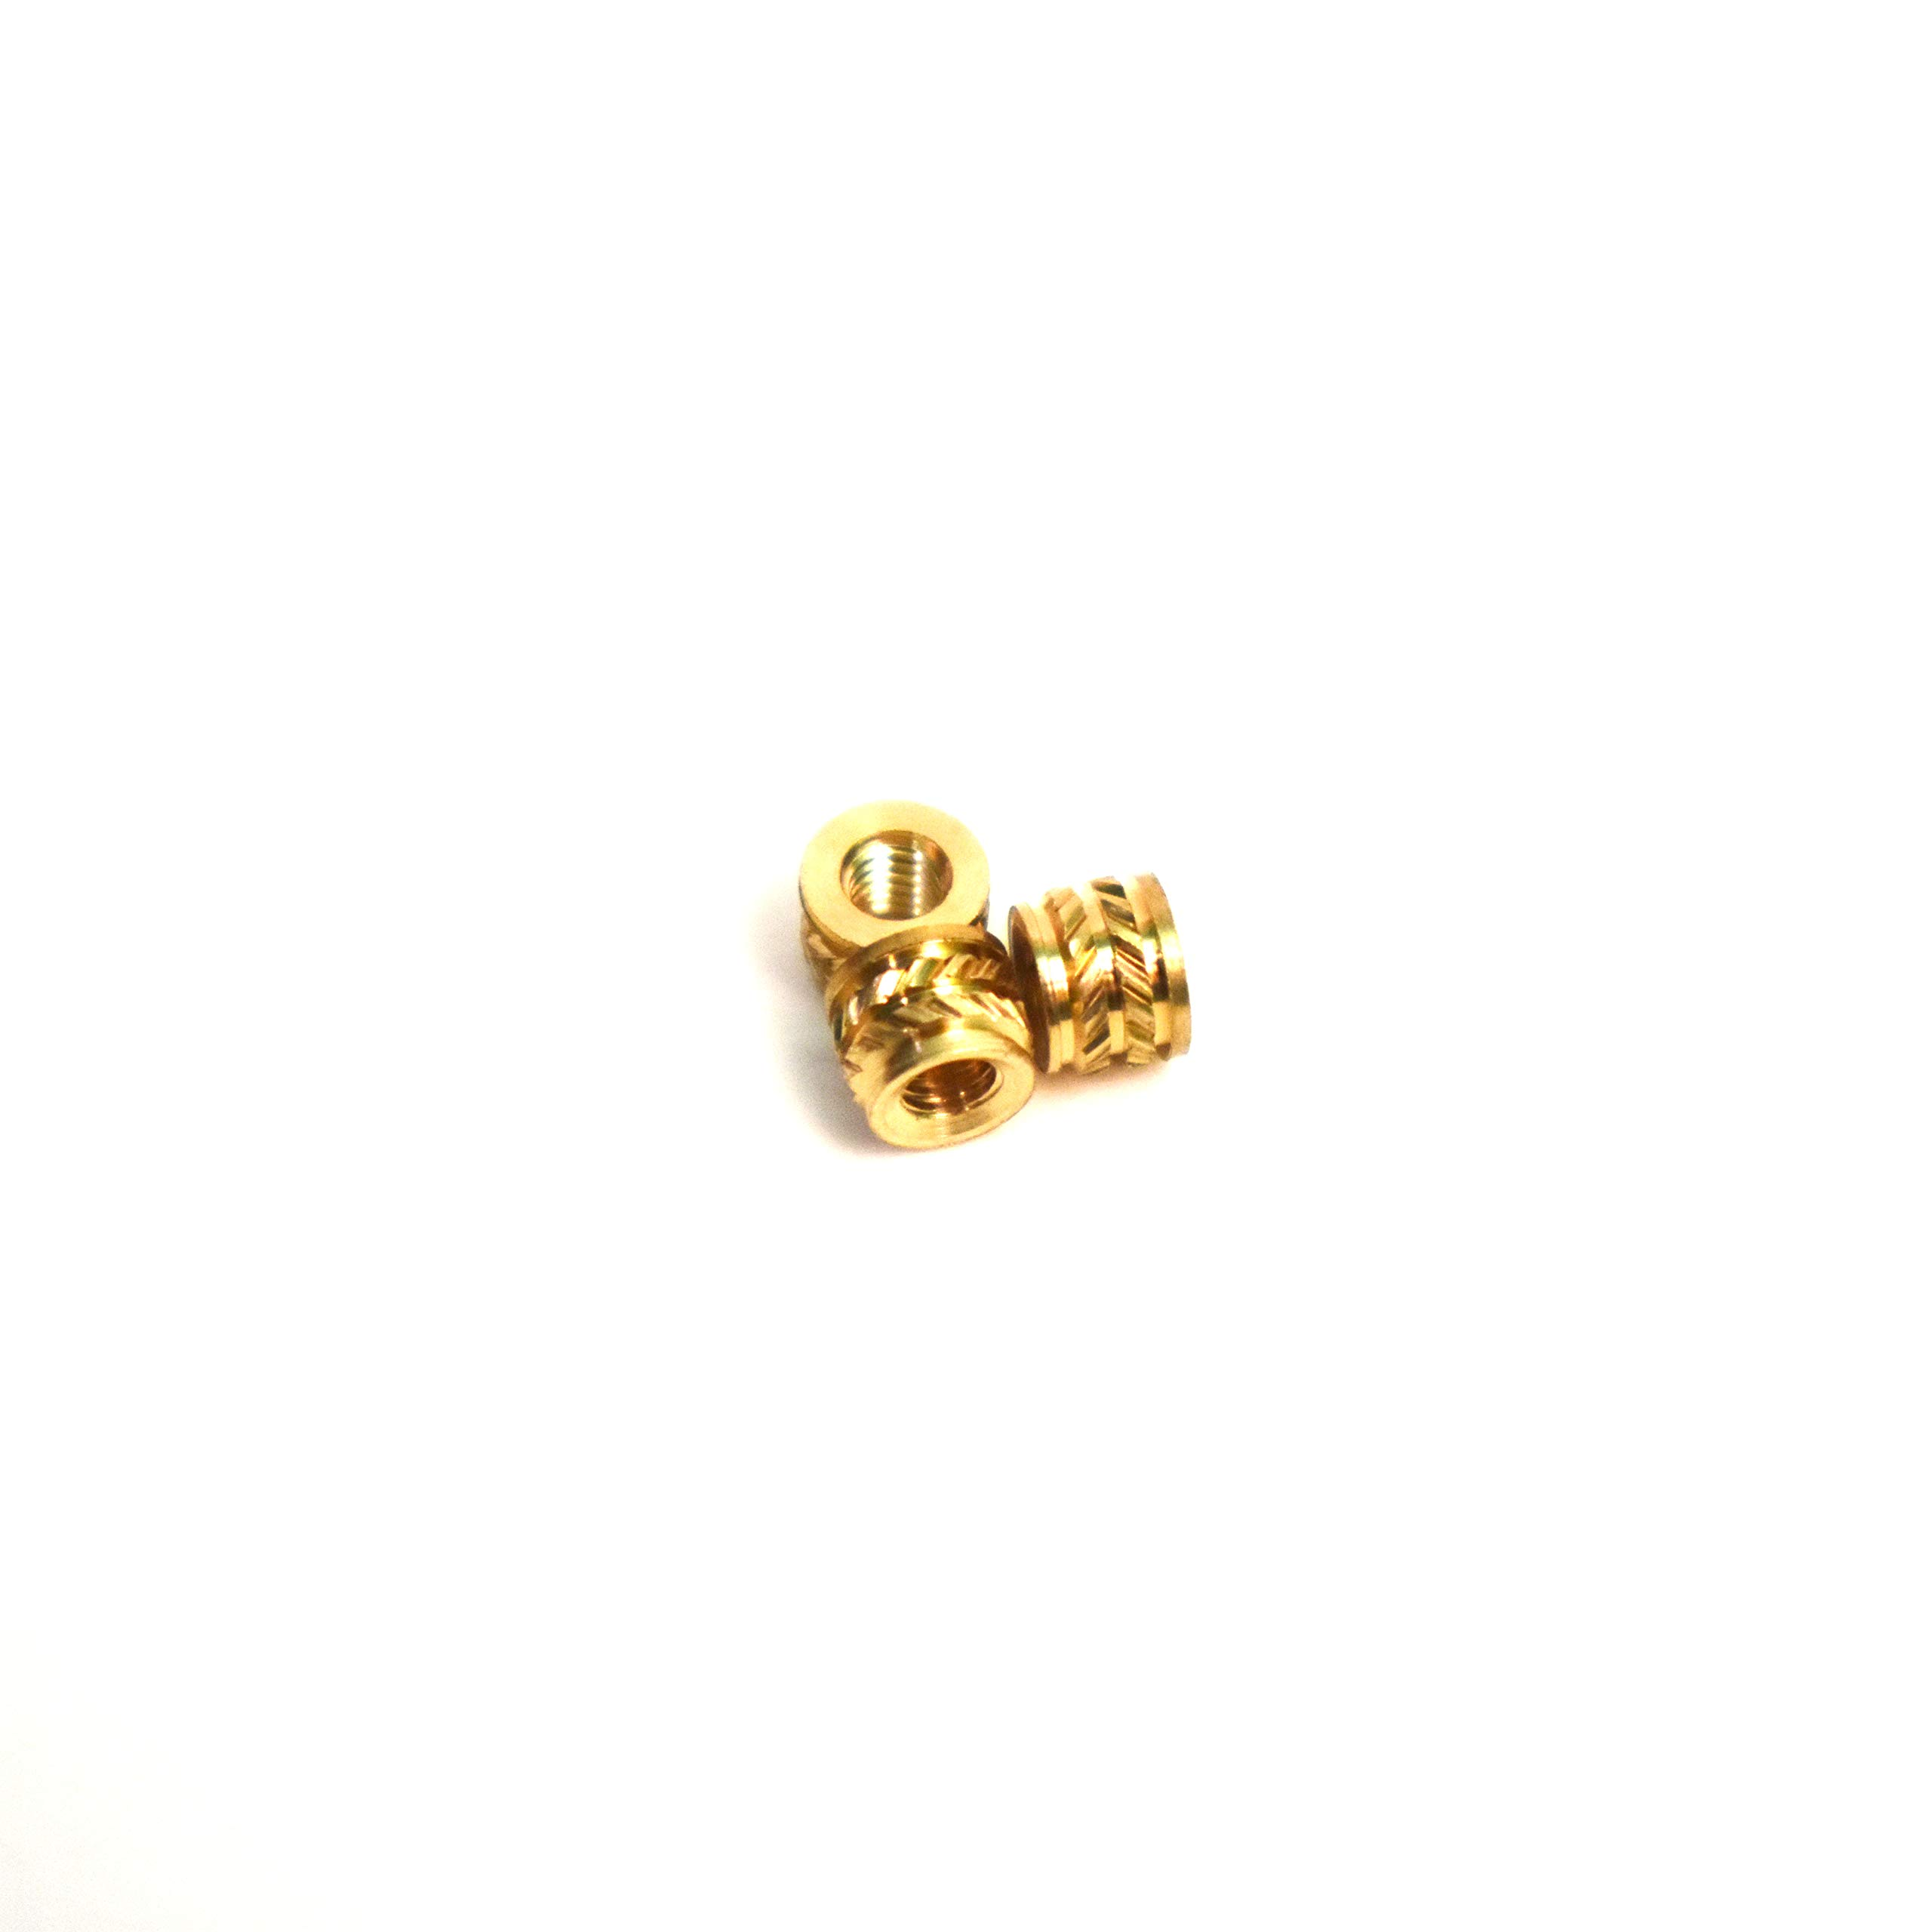 [ J&J Products, Inc ] M2.5 Brass Insert 100pcs,4.5mm OD, 3.4mm Length, Female M2.5 Thread, Press Fitting or Heat Sink or Injection Molding Type, 100 pcs by J&J Products, Inc